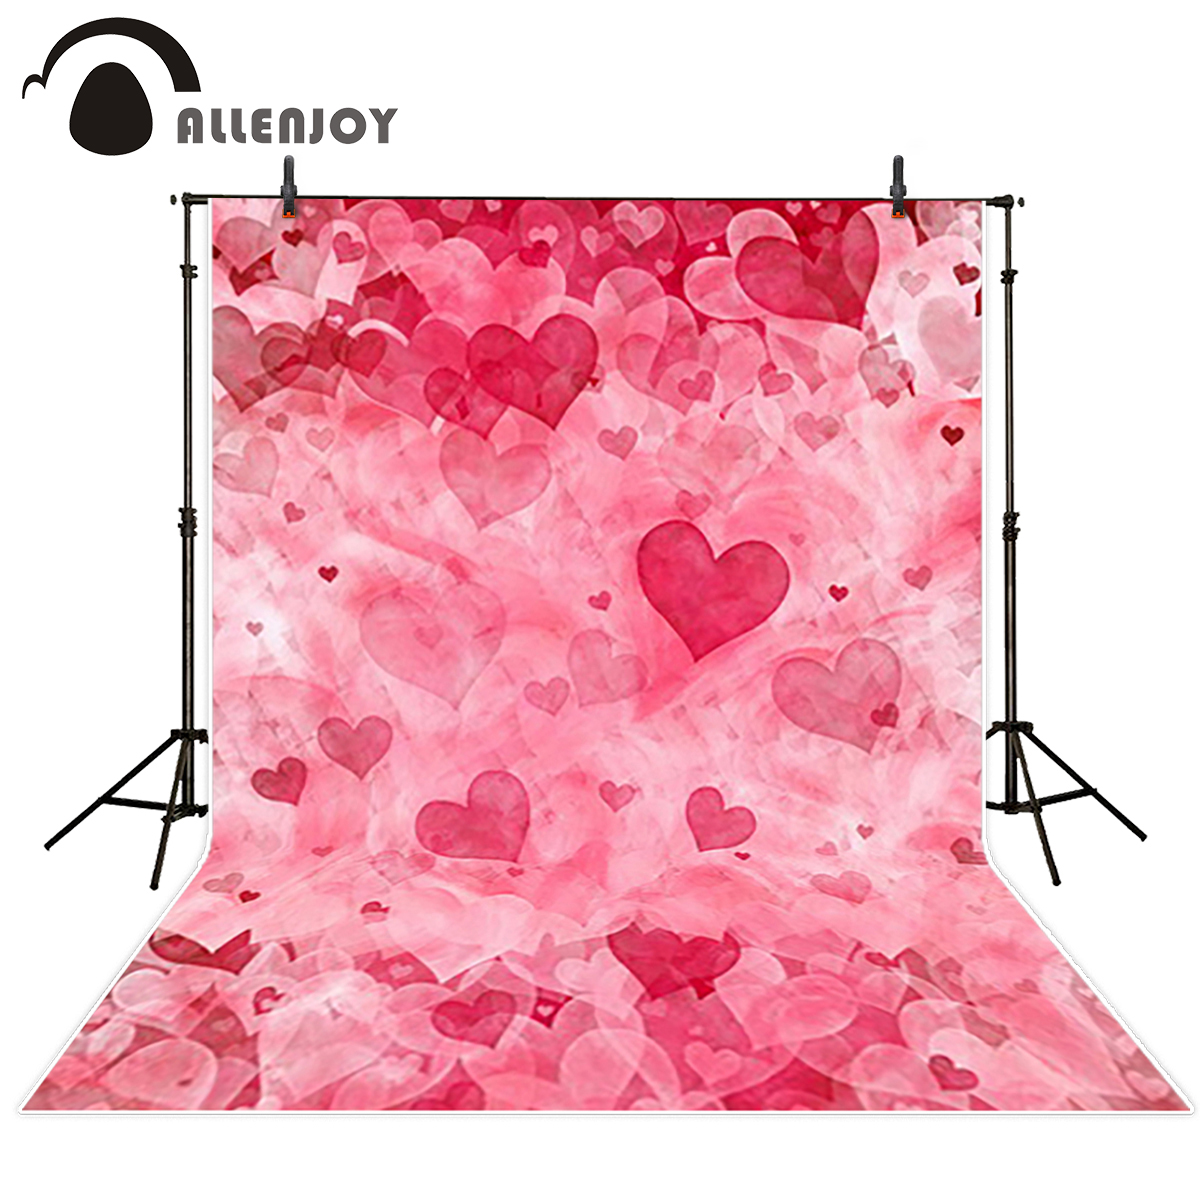 Allenjoy photo background Pink red hearts love wedding lover marriage gift photo booth camera fotografica profissional allenjoy photography backdrops love white wood board floor red hearts branches valentine s day wedding photo booth profissional